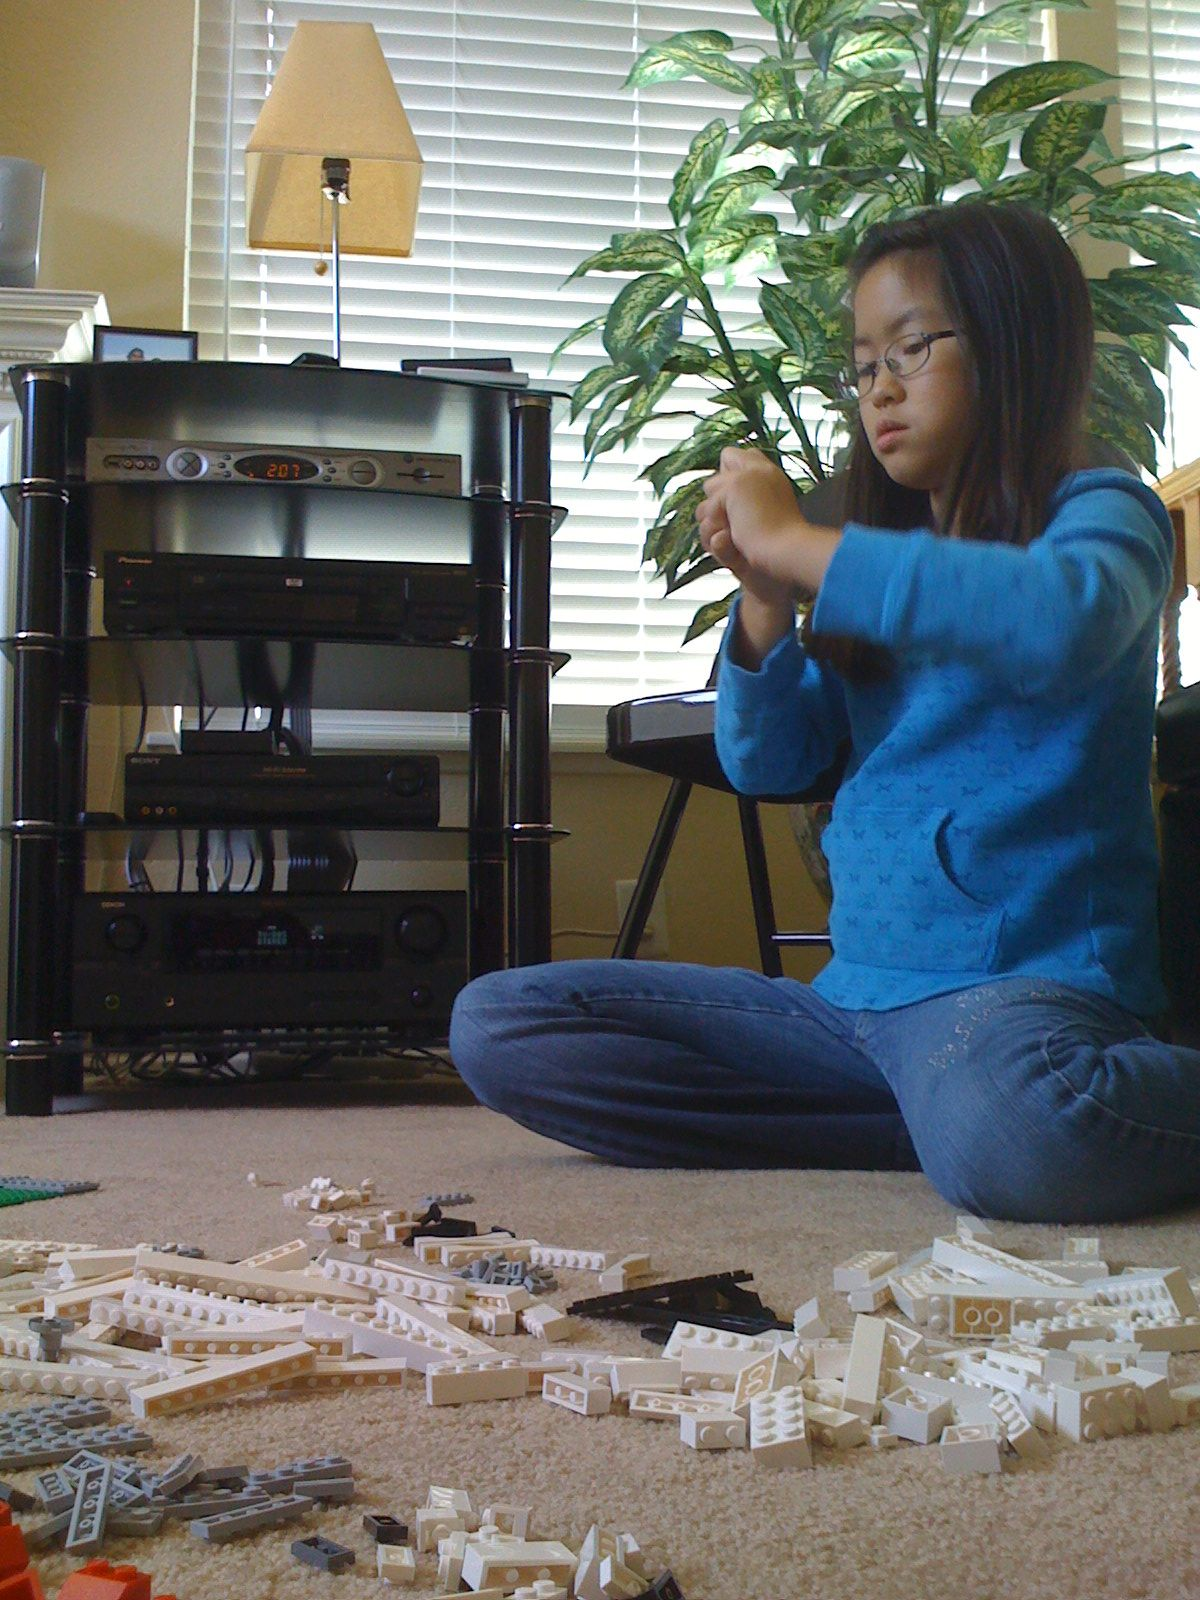 Finally got the Nintendos put away and onto more educational activities. Lego time!